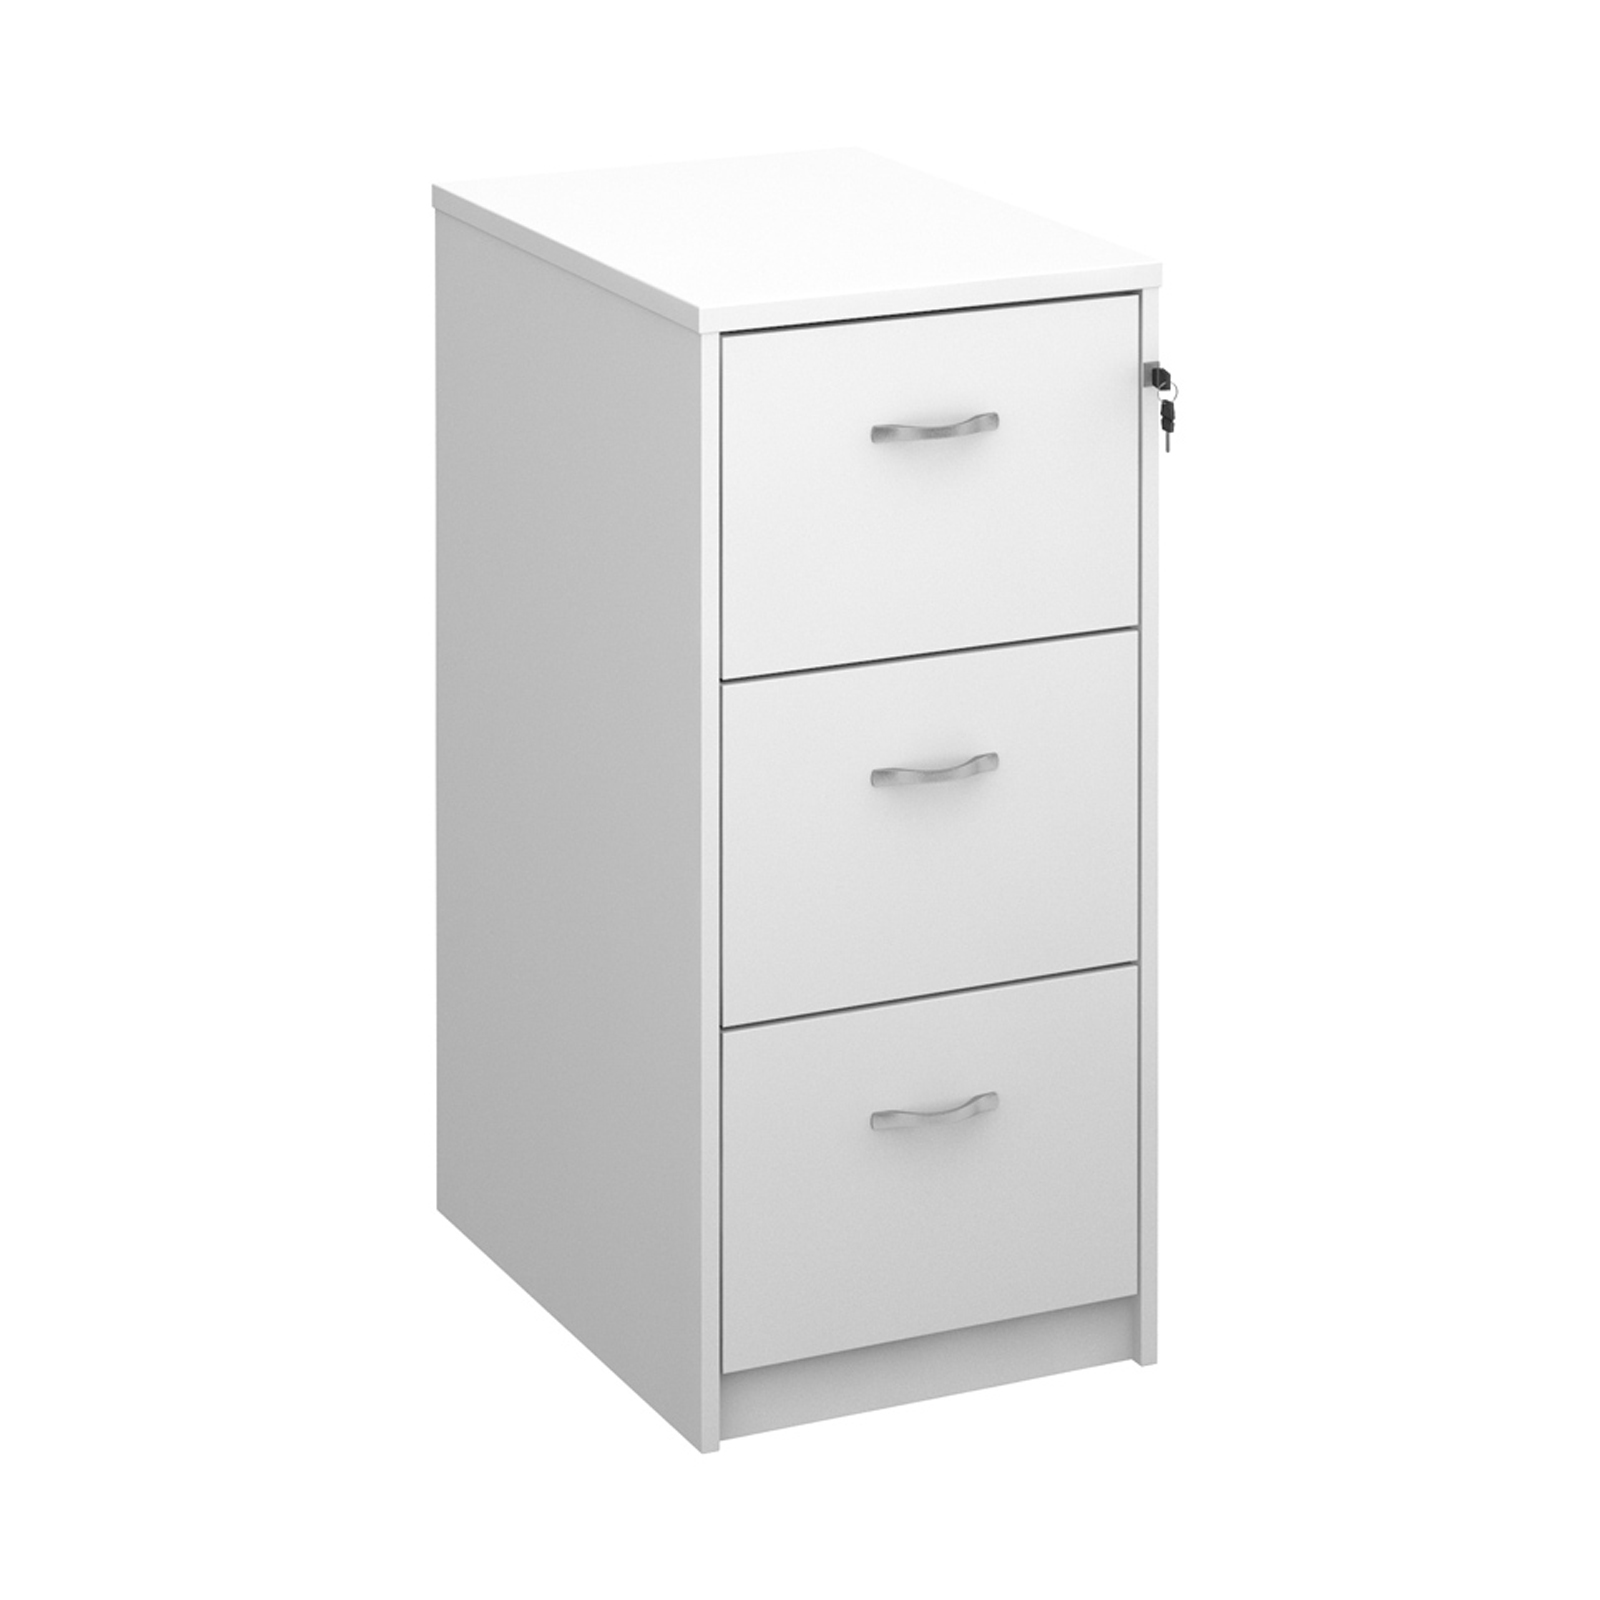 Wooden 3 drawer filing cabinet with silver handles 1045mm high - white